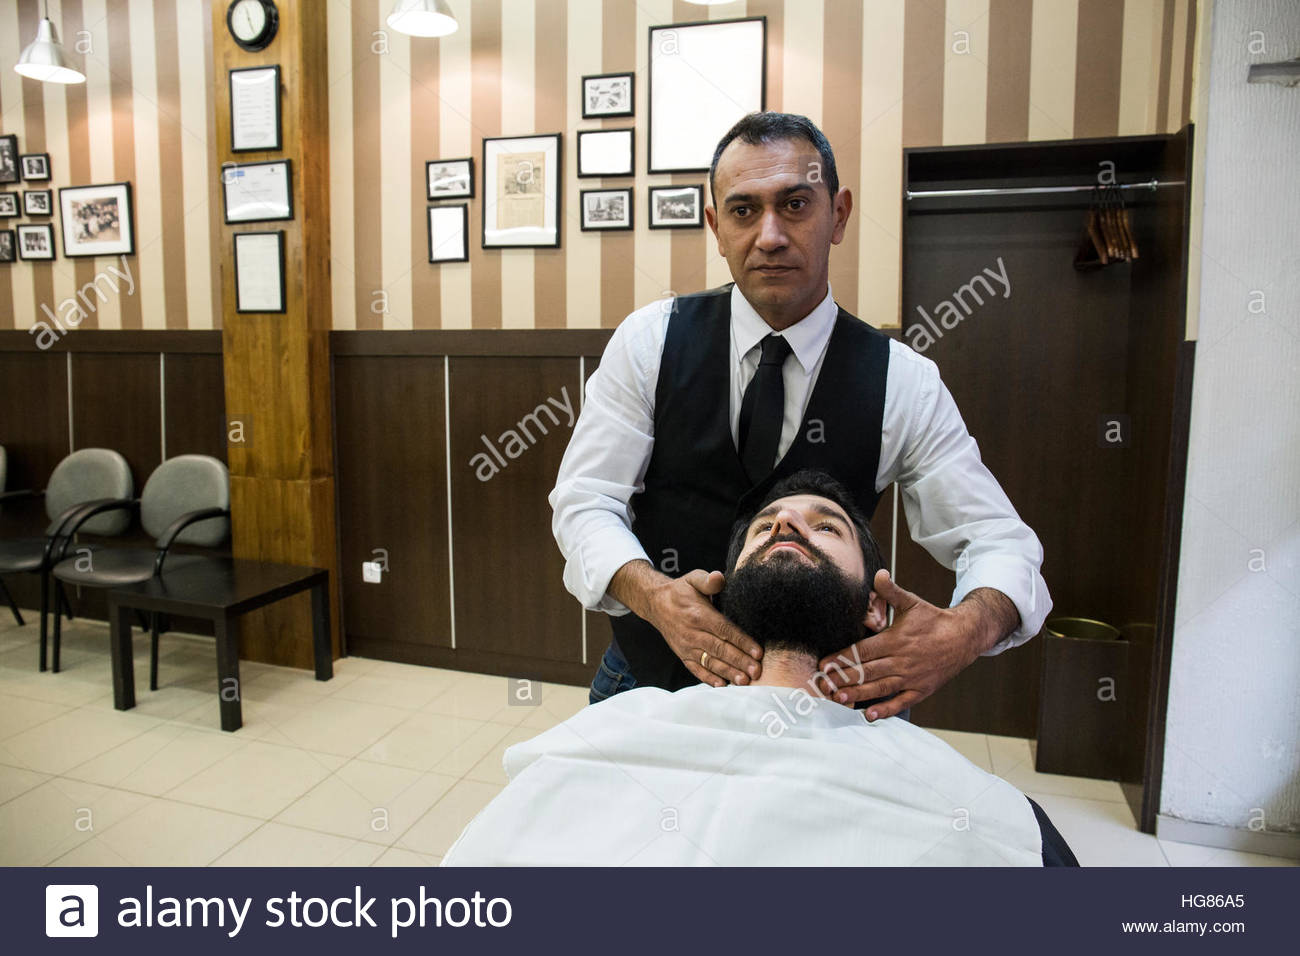 Barber doing facial massage to man in shop - Stock Image